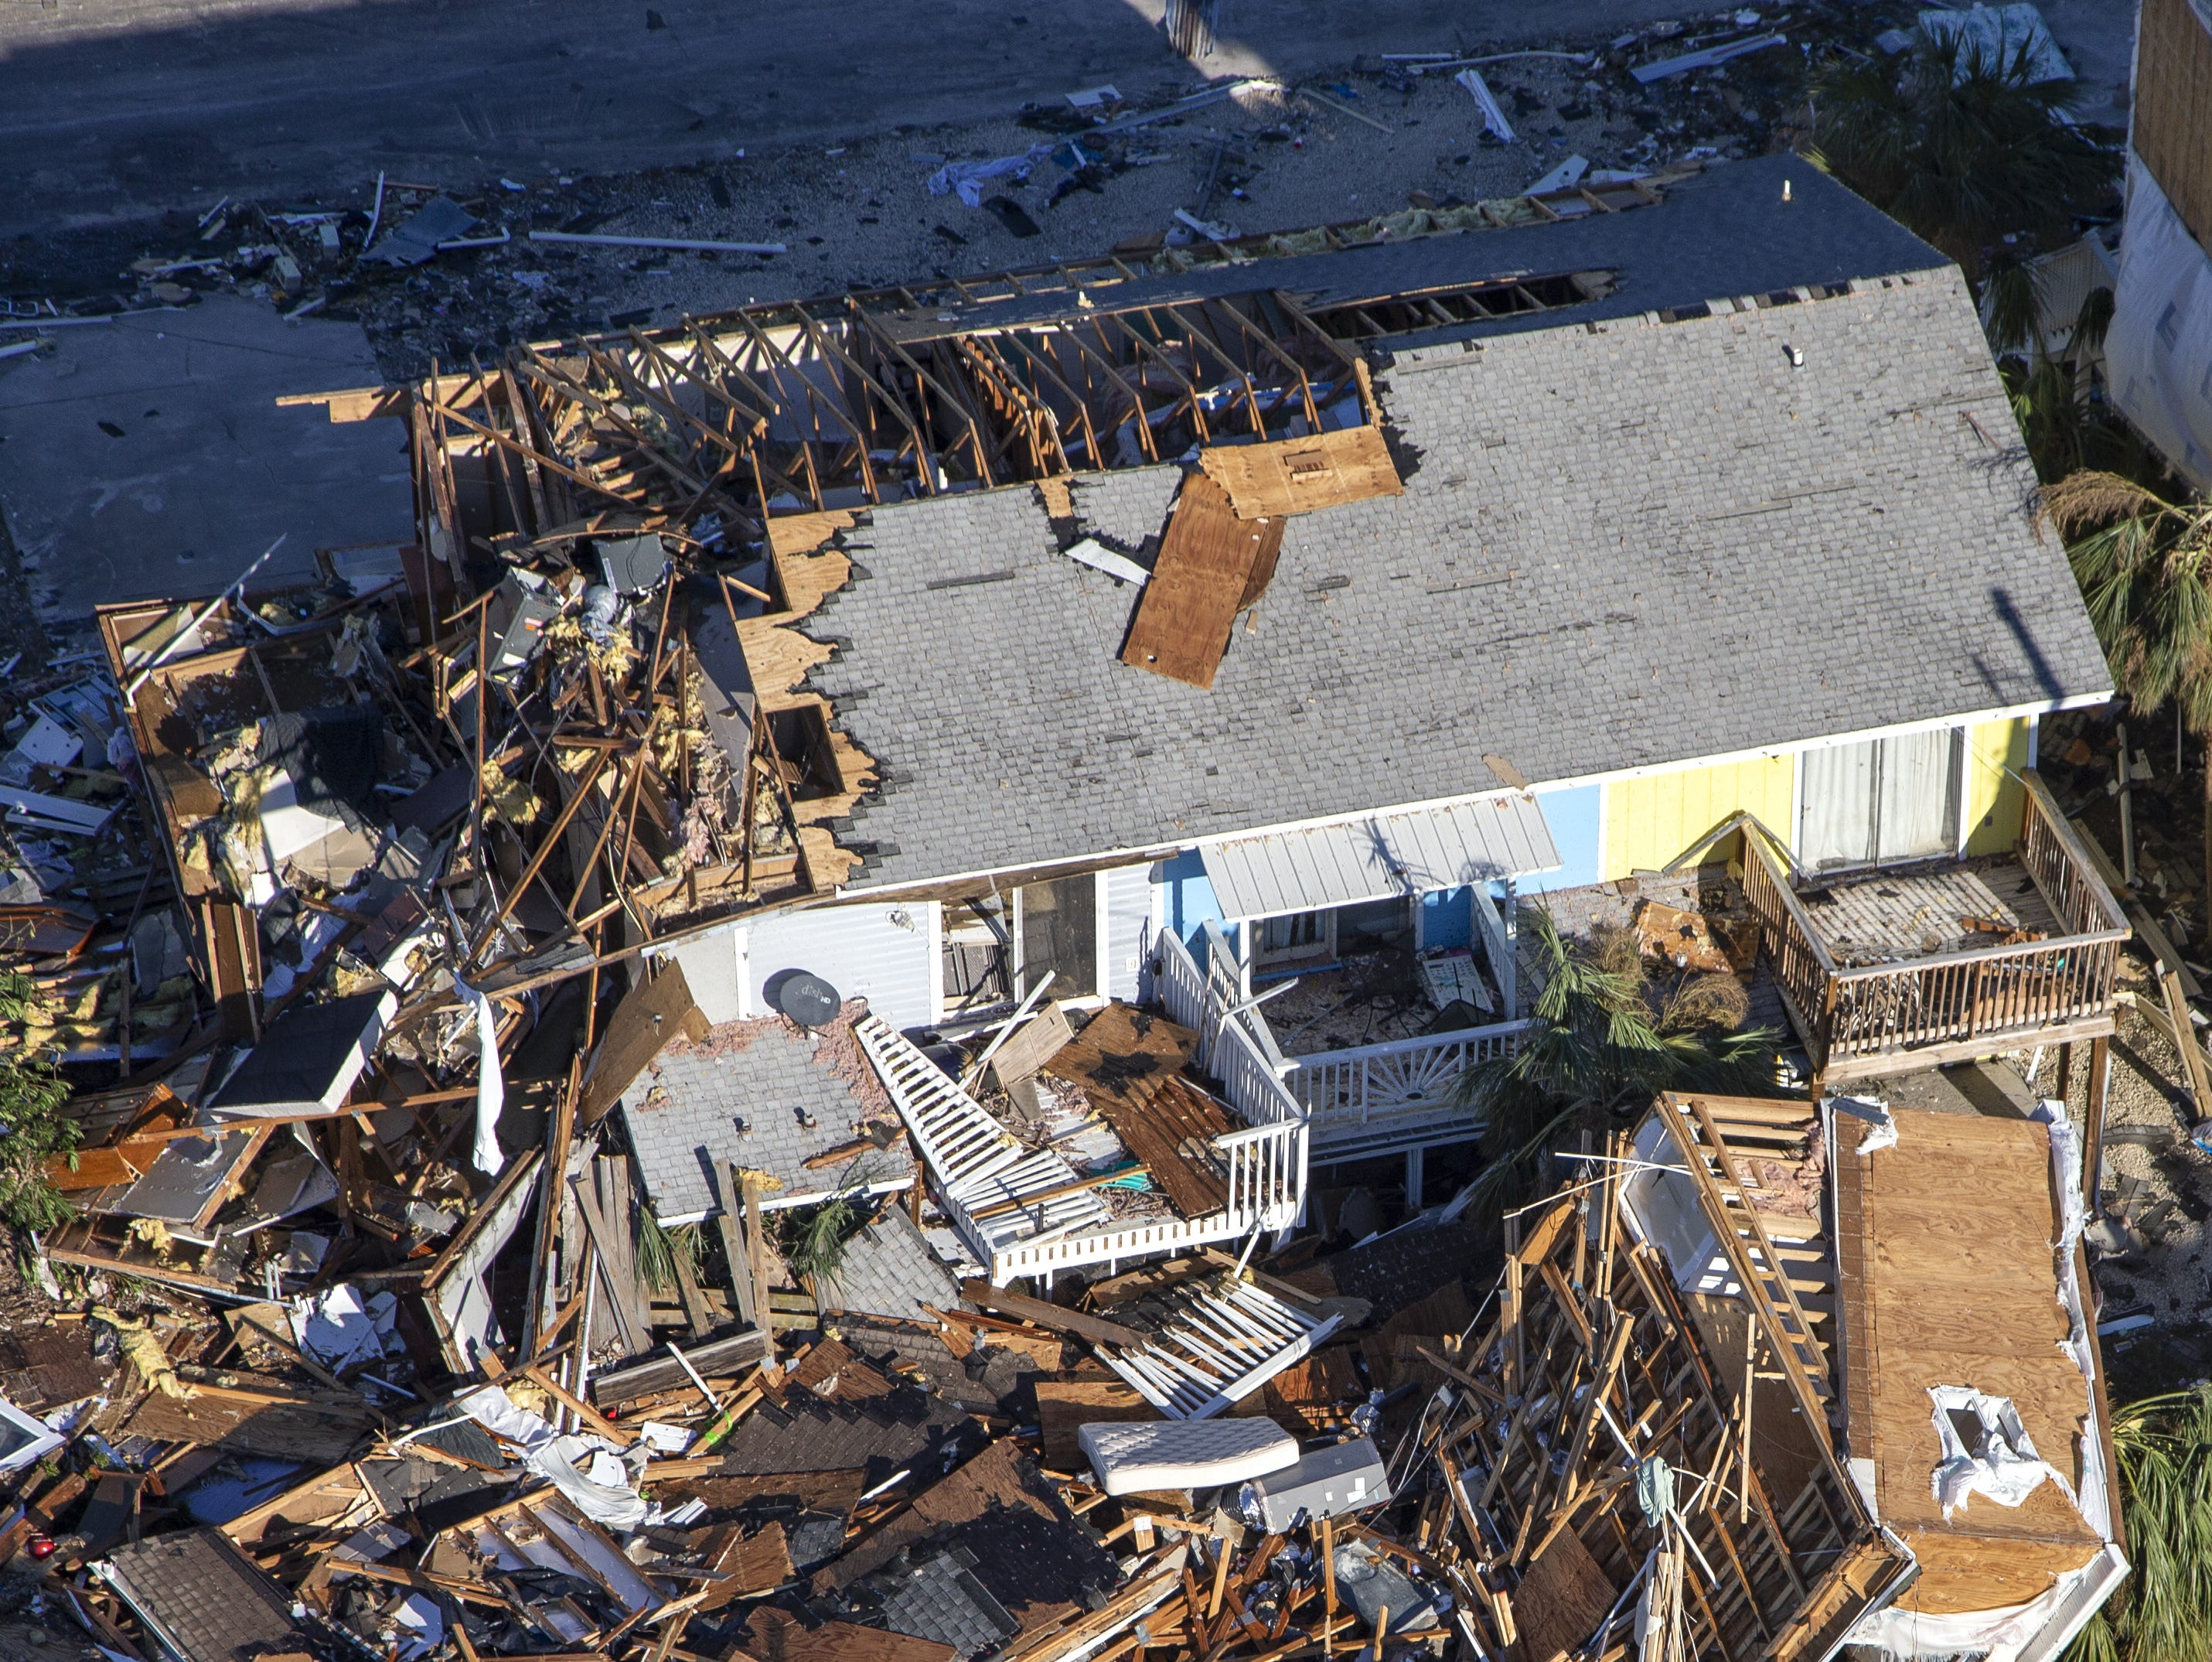 MEXICO BEACH, FL - OCTOBER 12: Homes and businesses along US 98 are left in devastation by Hurricane Michael on October 12, 2018 in Mexico Beach, Florida. At least 13 people have died across the South since Hurricane Michael made landfall along the Florida Panhandle Wednesday as a Category 4 storm.